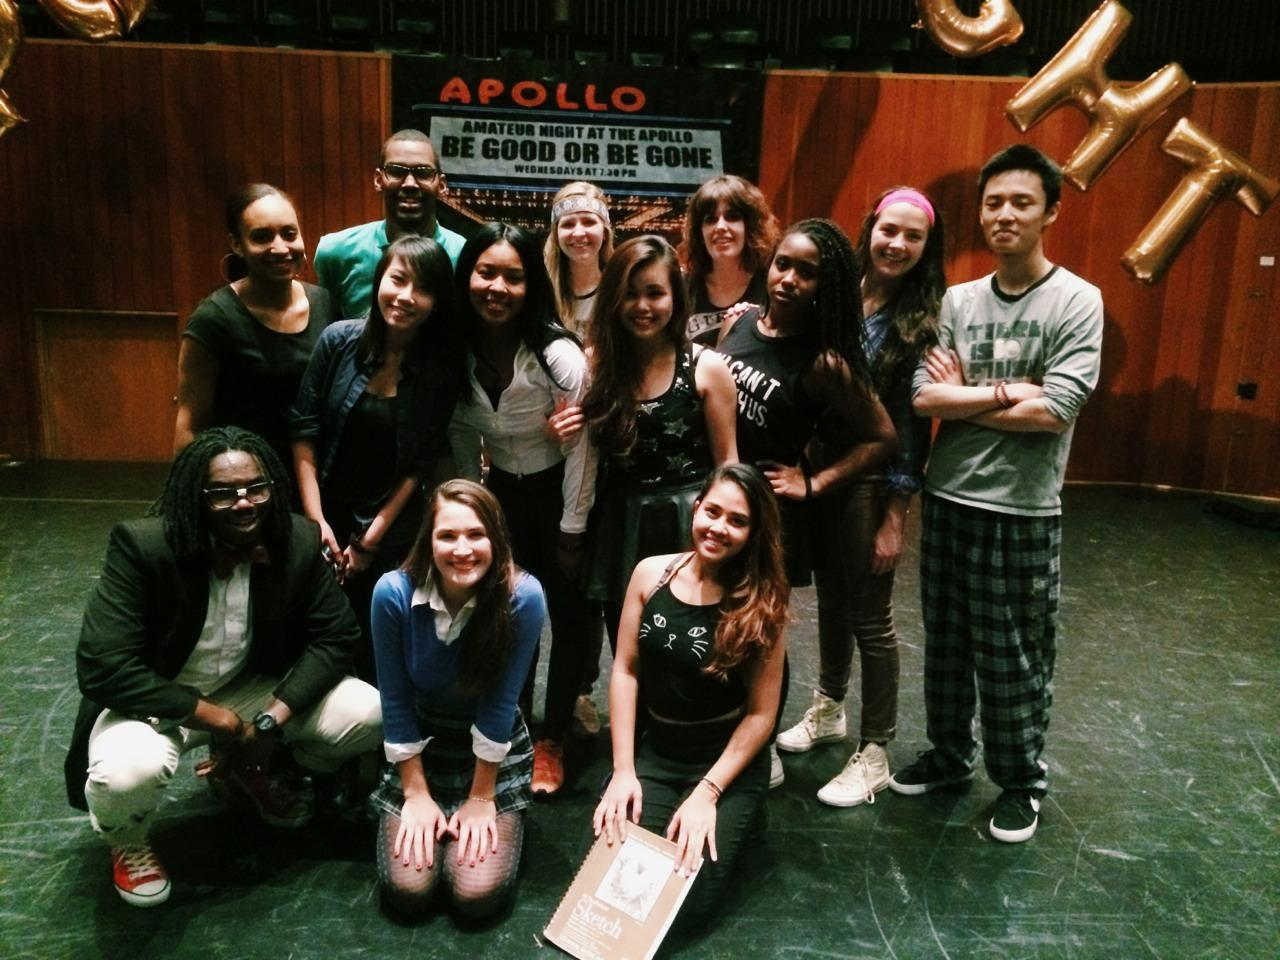 The Hypnotic dance team poses during last year's Apollo night, an annual event where they perform.